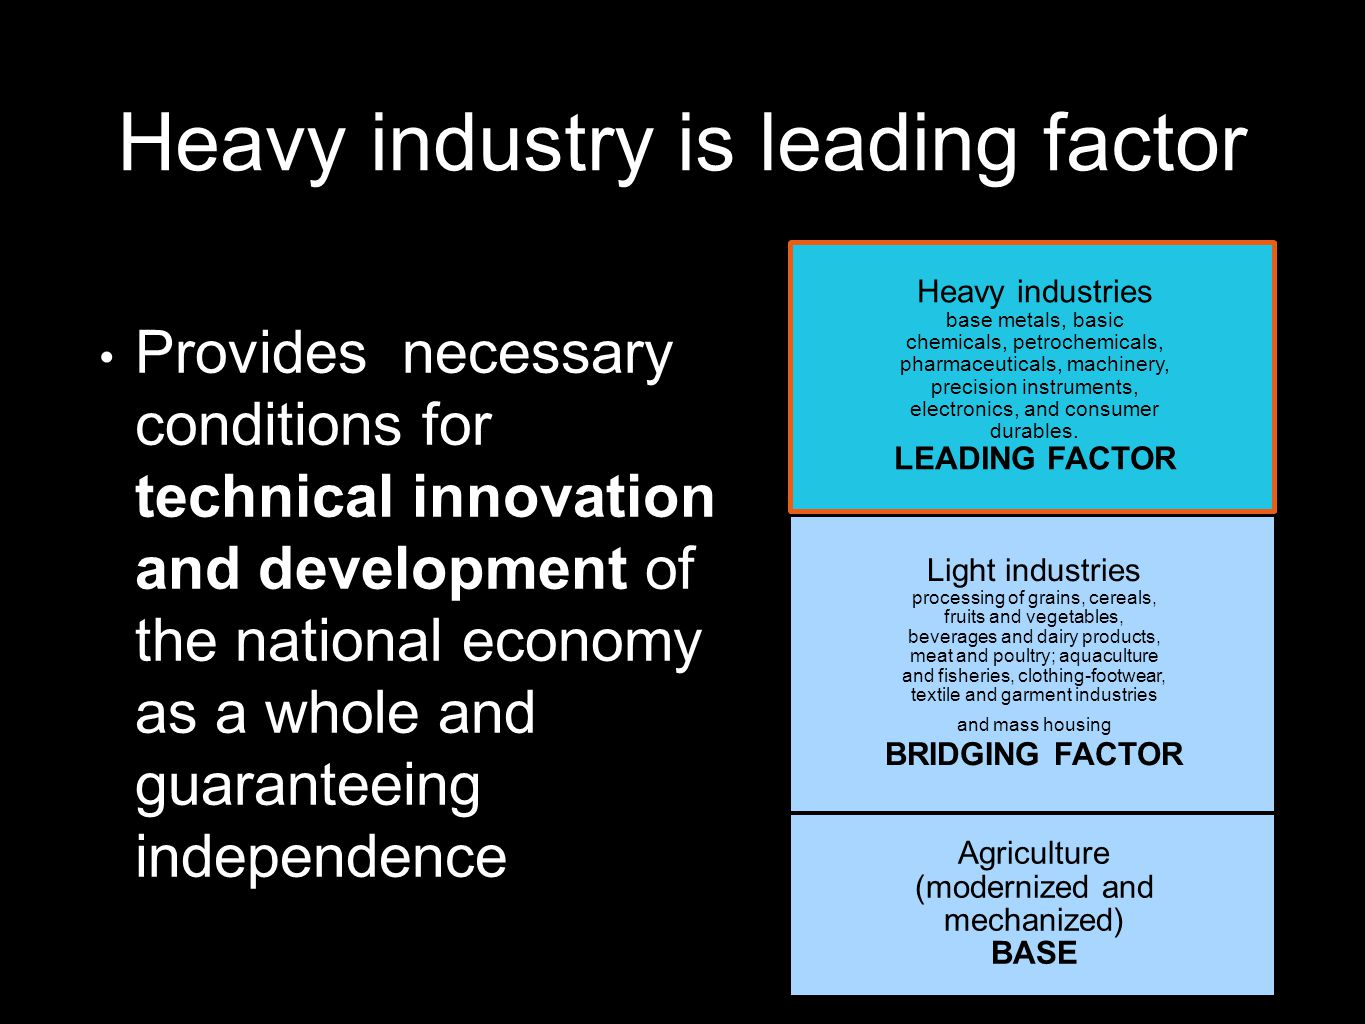 Heavy industry is leading factor Provides necessary conditions for technical innovation and development of the national economy as a whole and guaranteeing independence Heavy industries base metals, basic chemicals, petrochemicals, pharmaceuticals, machinery, precision instruments, electronics, and consumer durables.